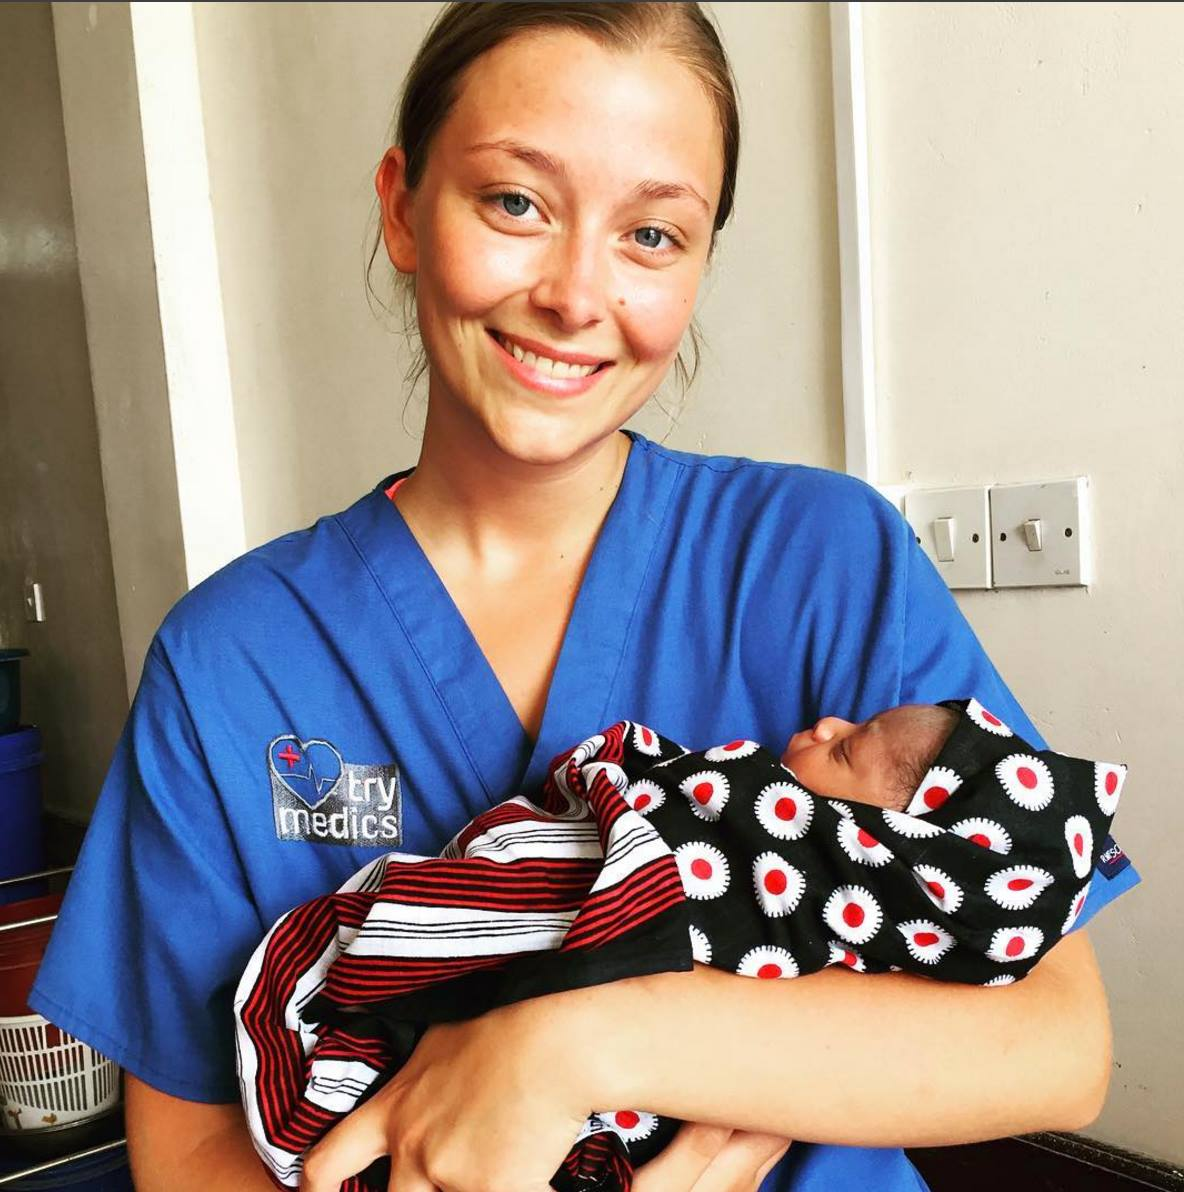 About the stay - Try Medics hospital internship abroad